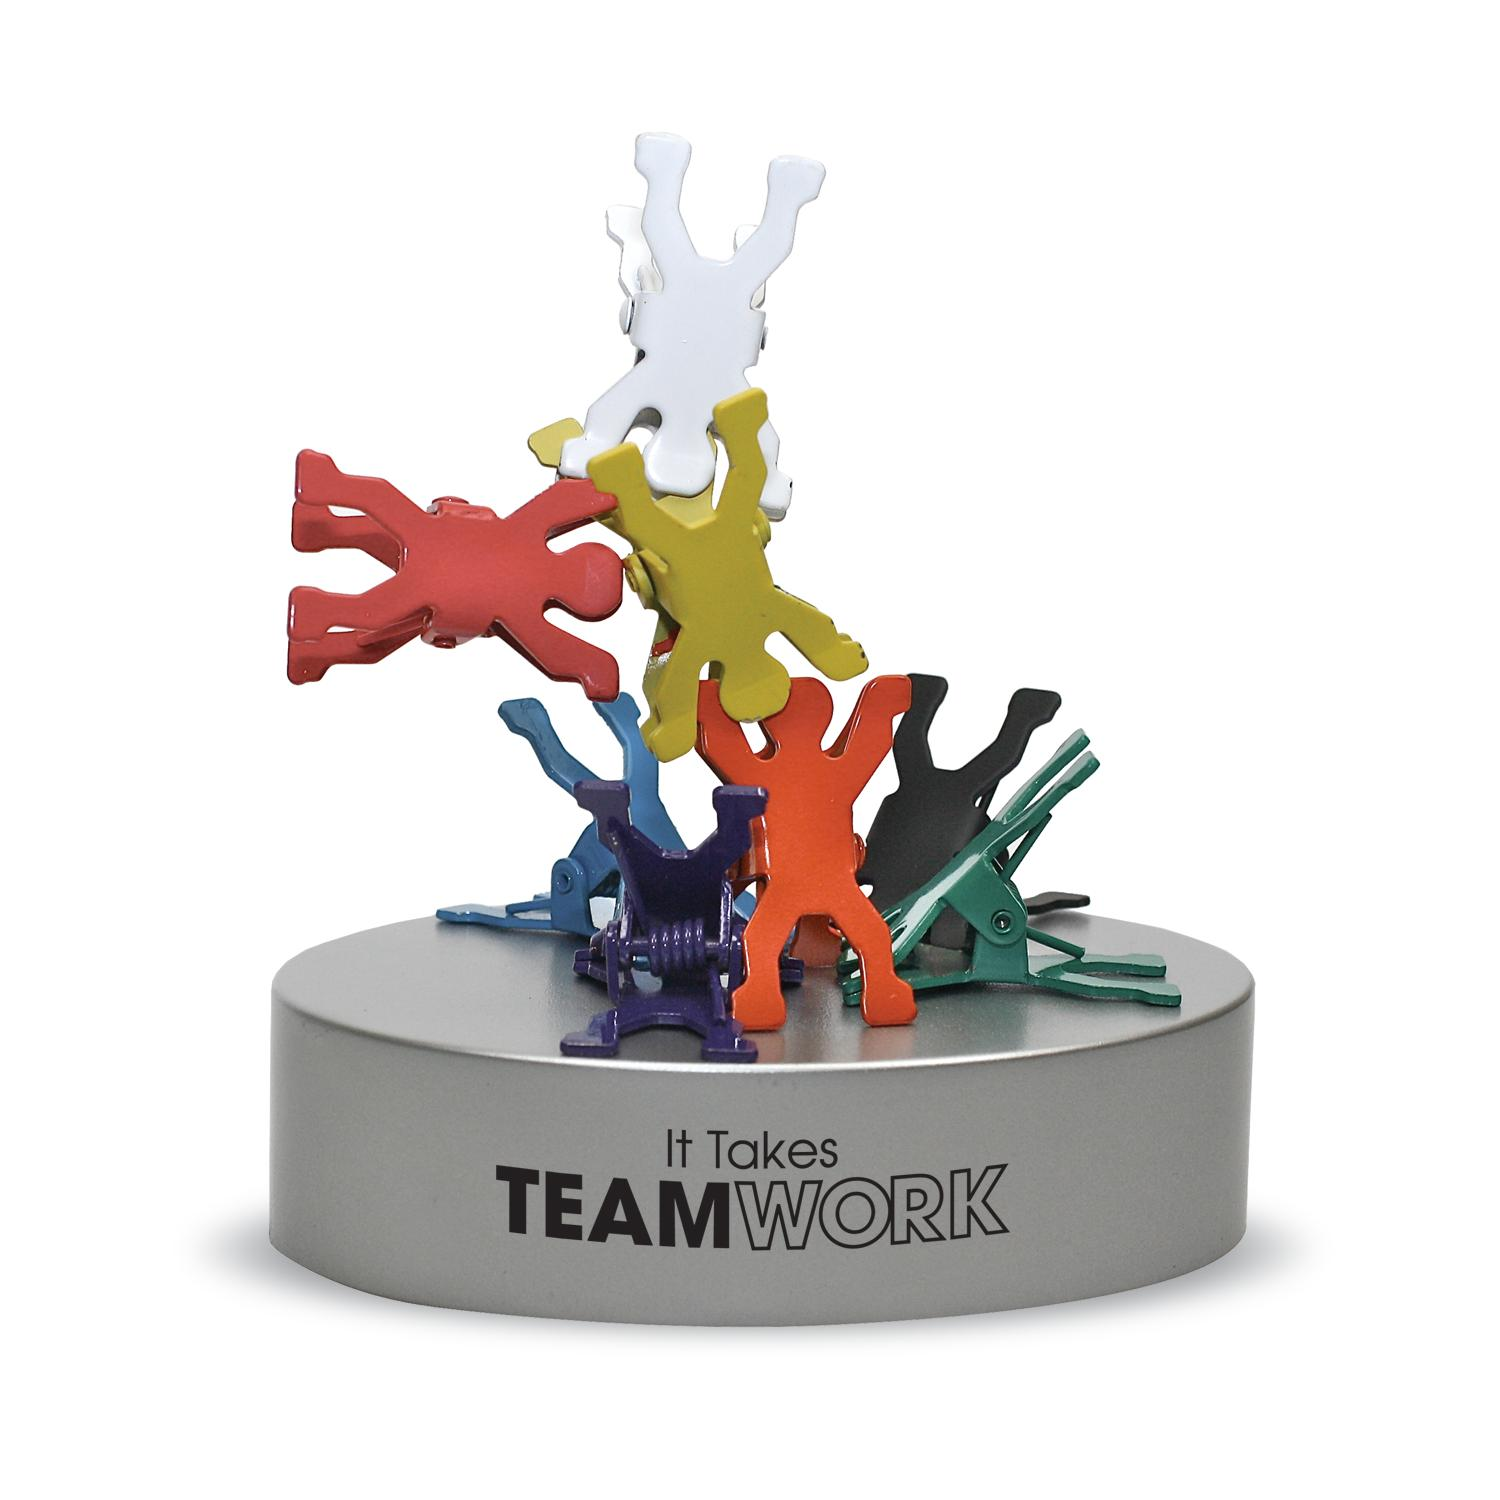 Figurine clipart employee  Art Download Teamwork Cliparts